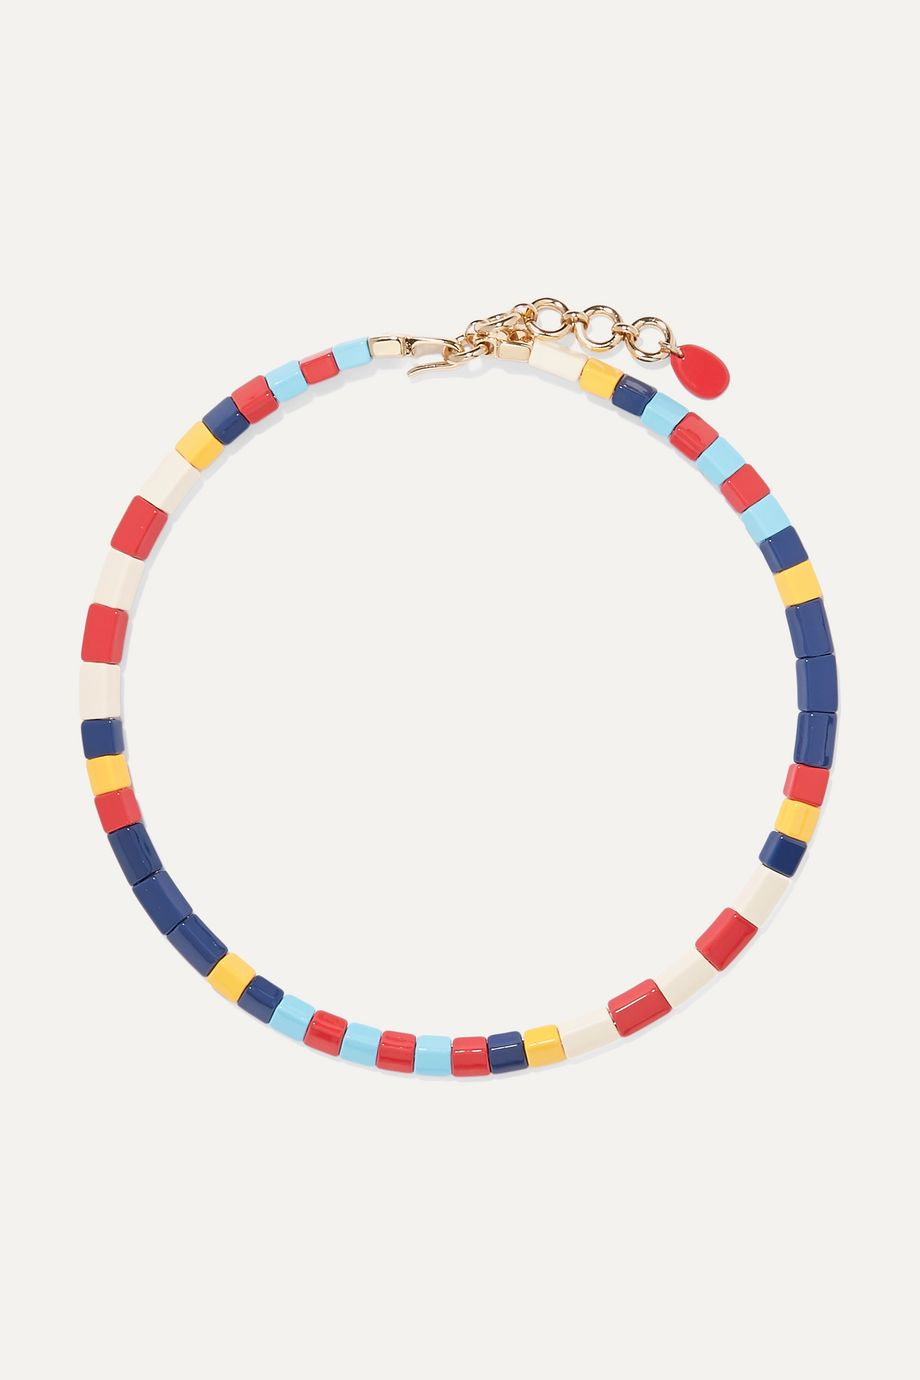 Roxanne Assoulin Regatta enamel necklace